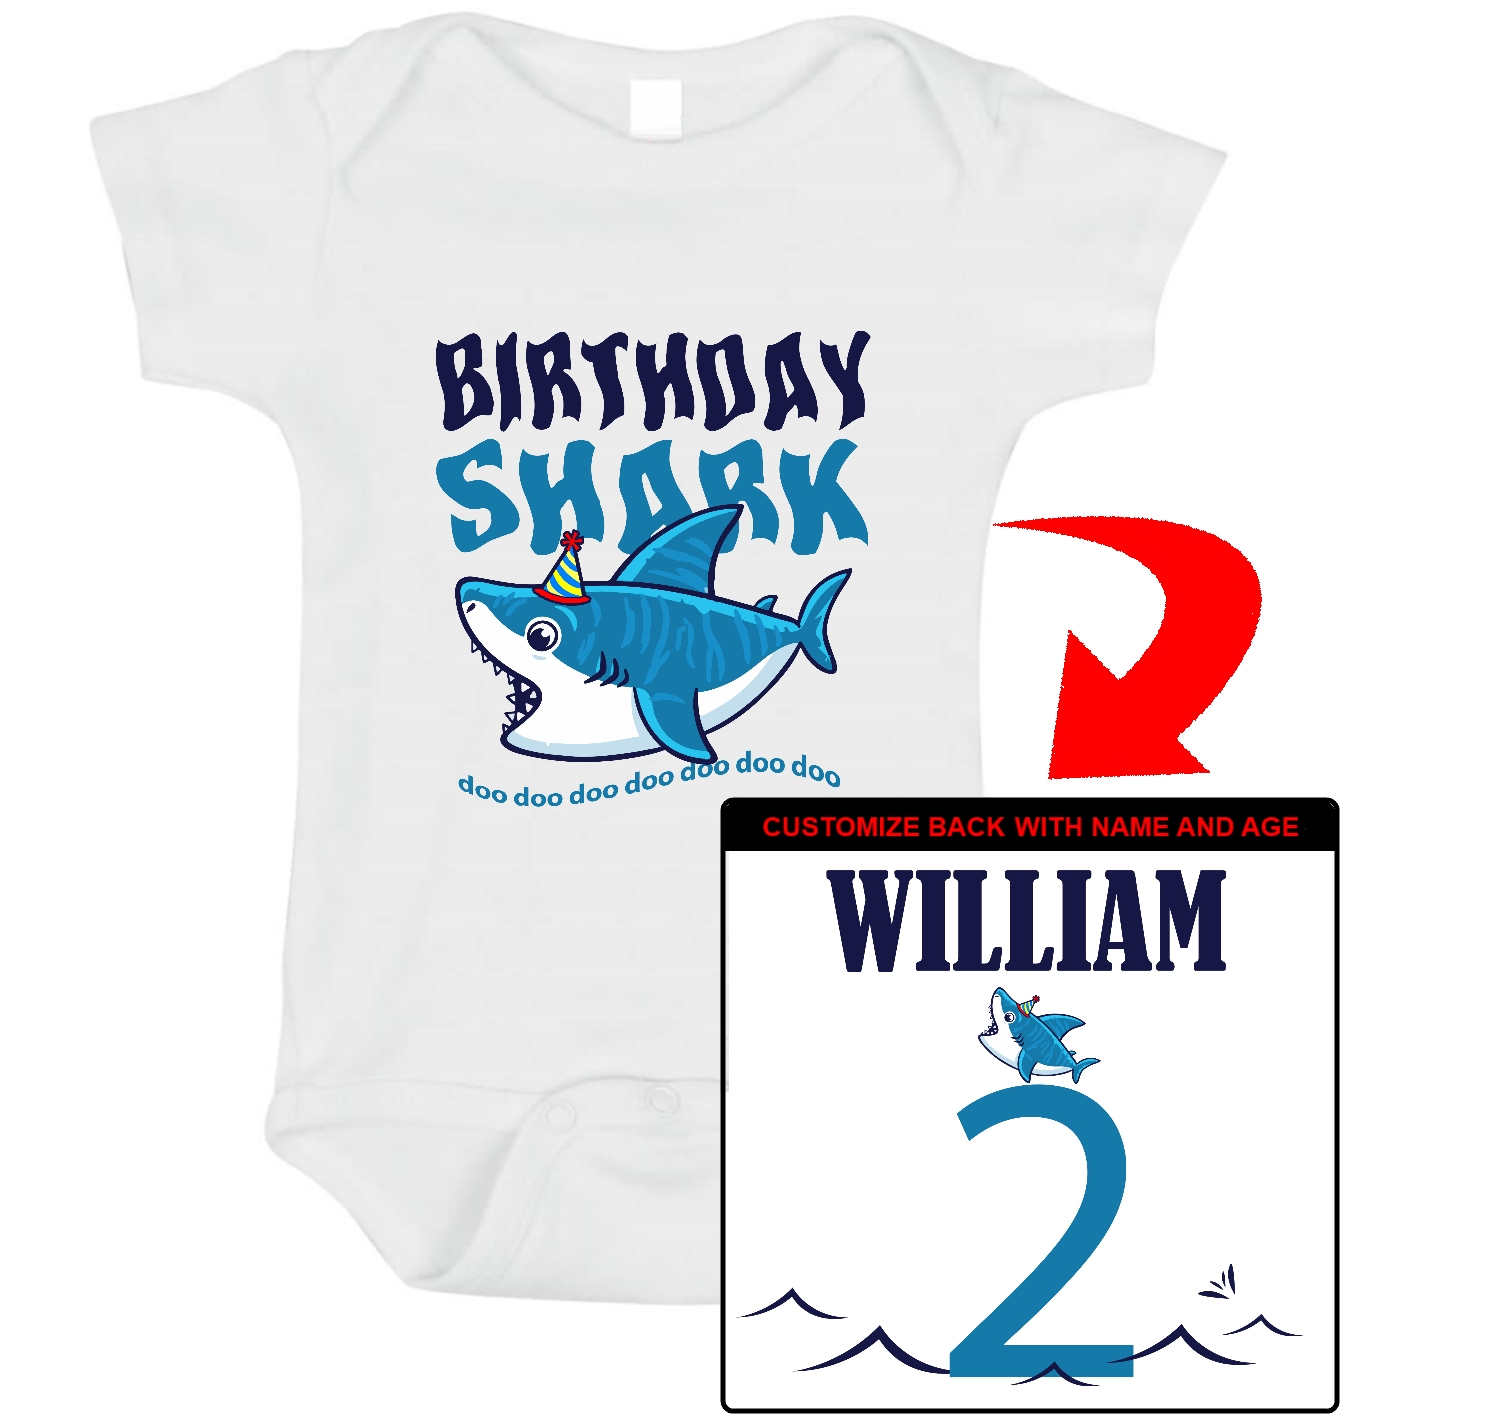 0d66185fc Birthday Shark - First Birthday Shirt. 1st Birthday Shirt. Boys Happy  Birthday. Custom T-Shirt with your boys name and age. Personalized Birthday  T-Shirt